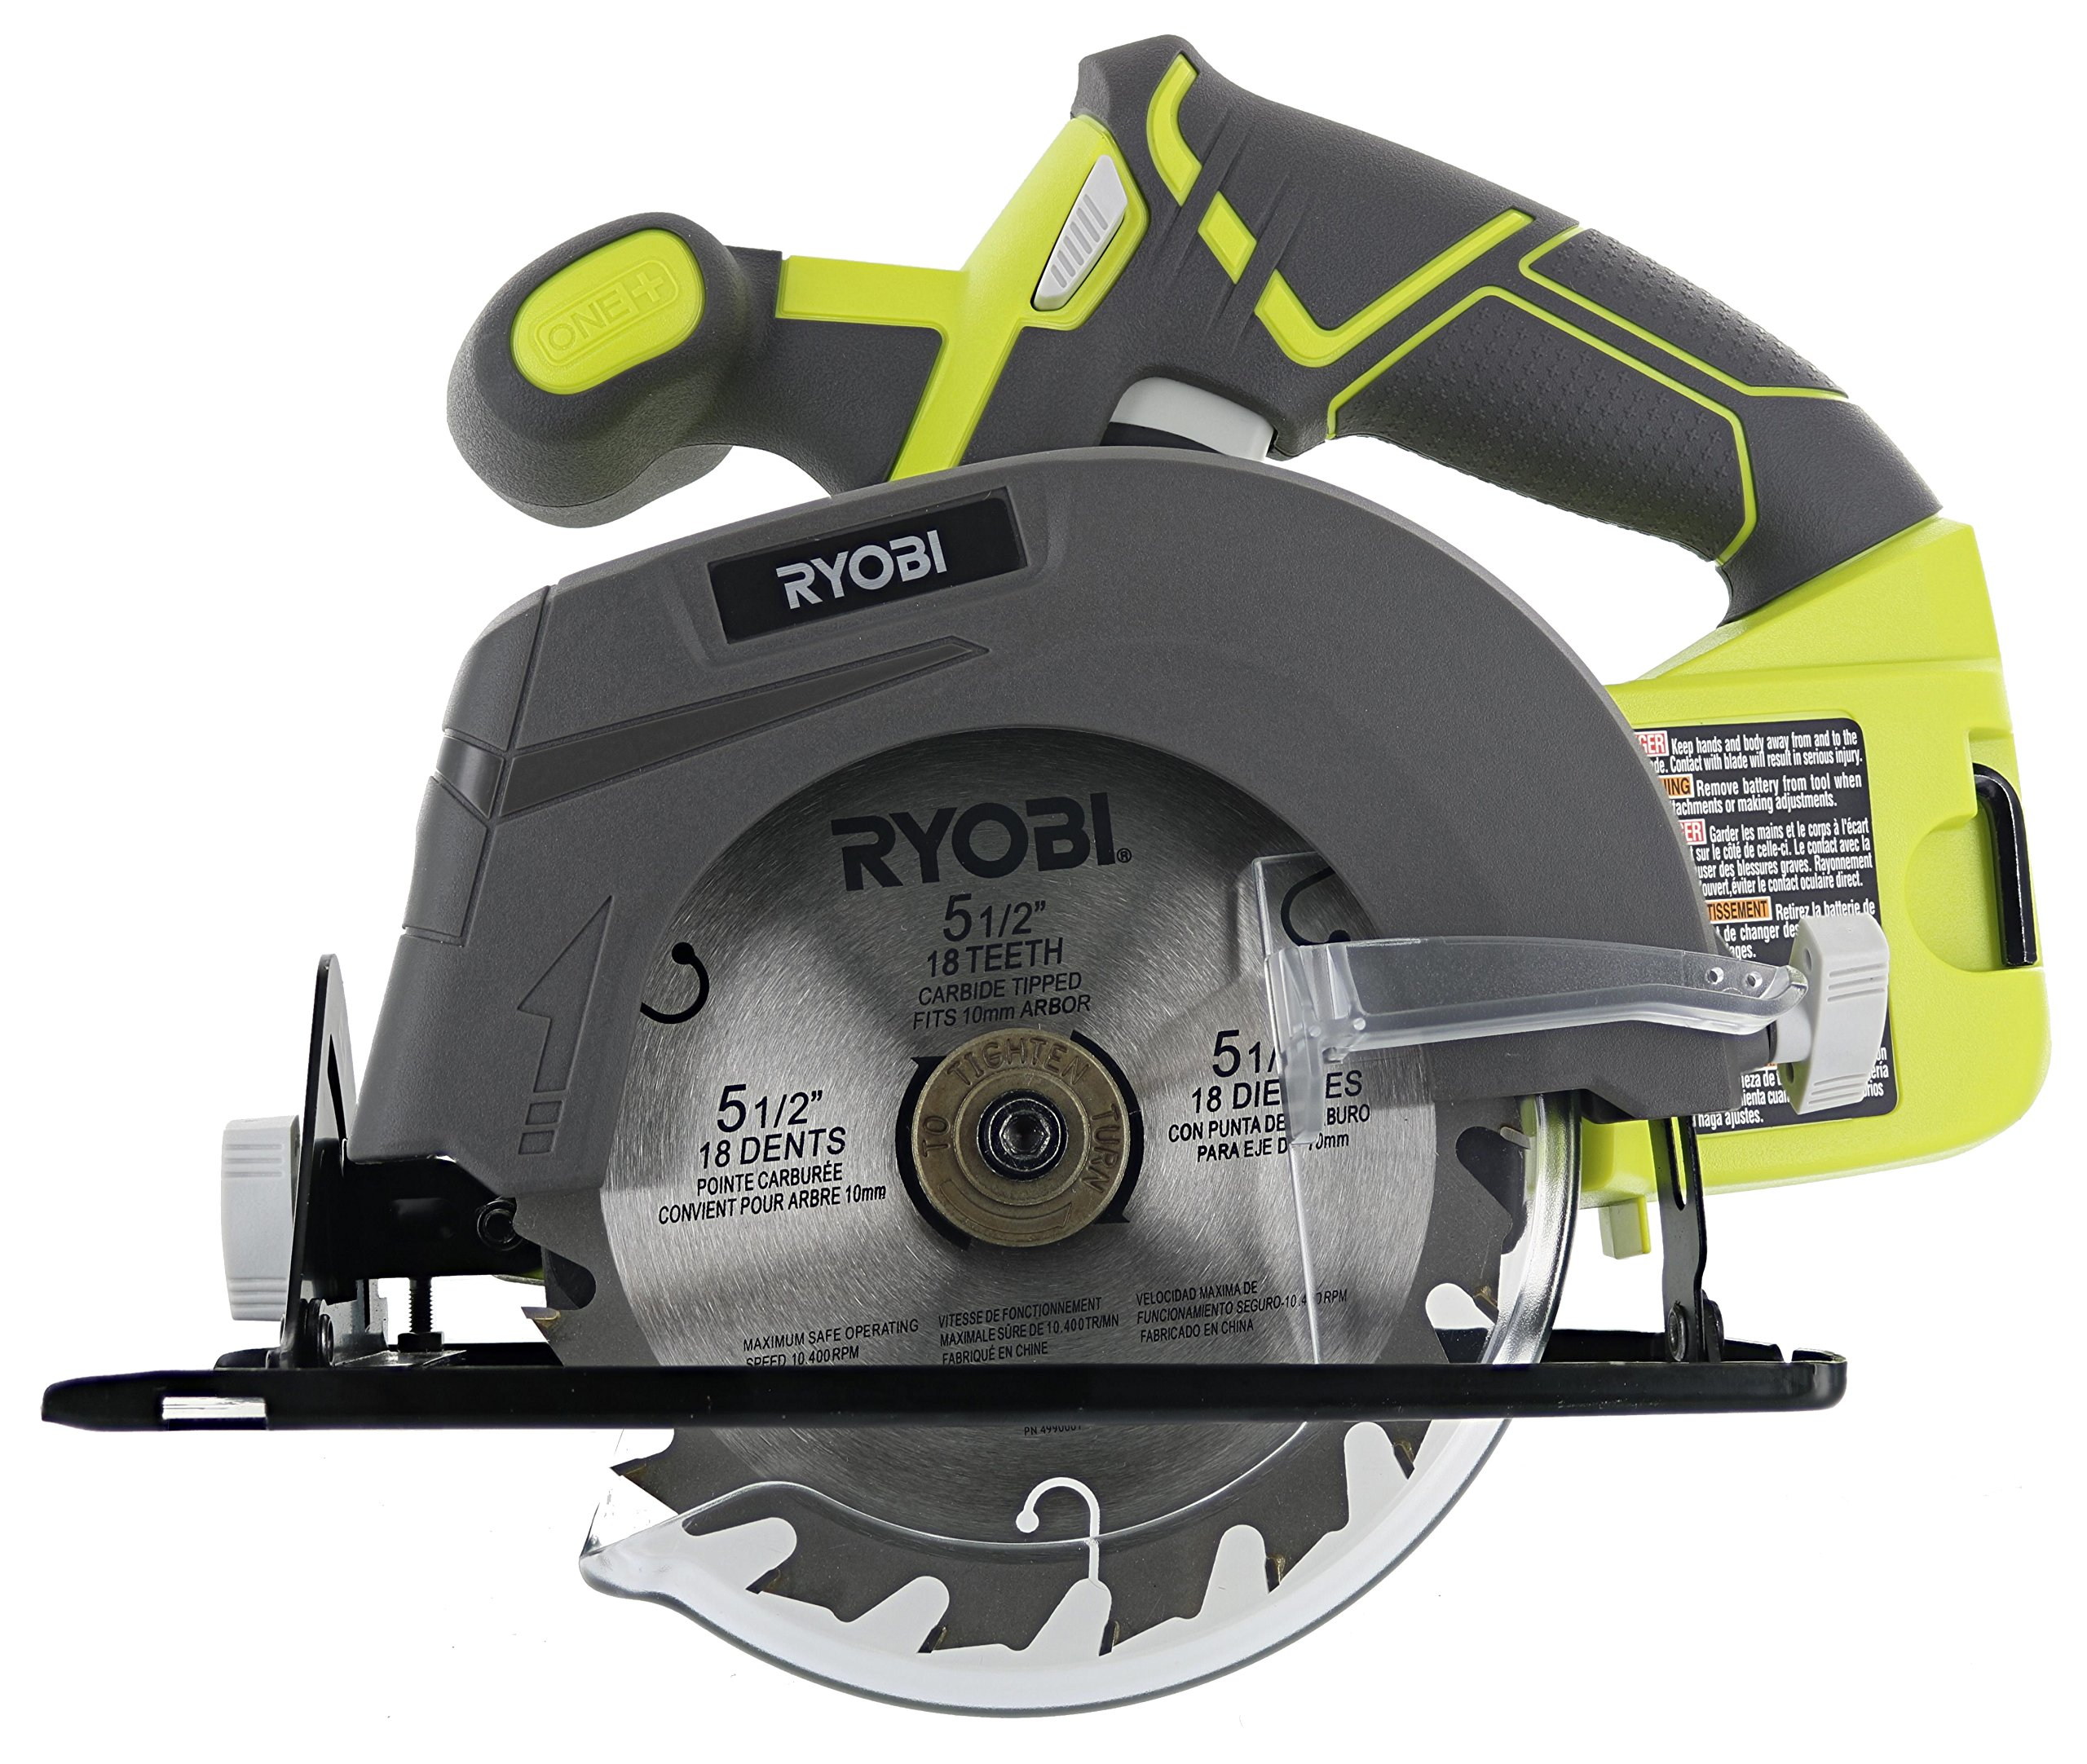 Ryobi One+ P505 18V Lithium Ion Cordless 5-1/2'' 4,700 RPM Circular Saw (Battery Not Included, Power Tool Only)